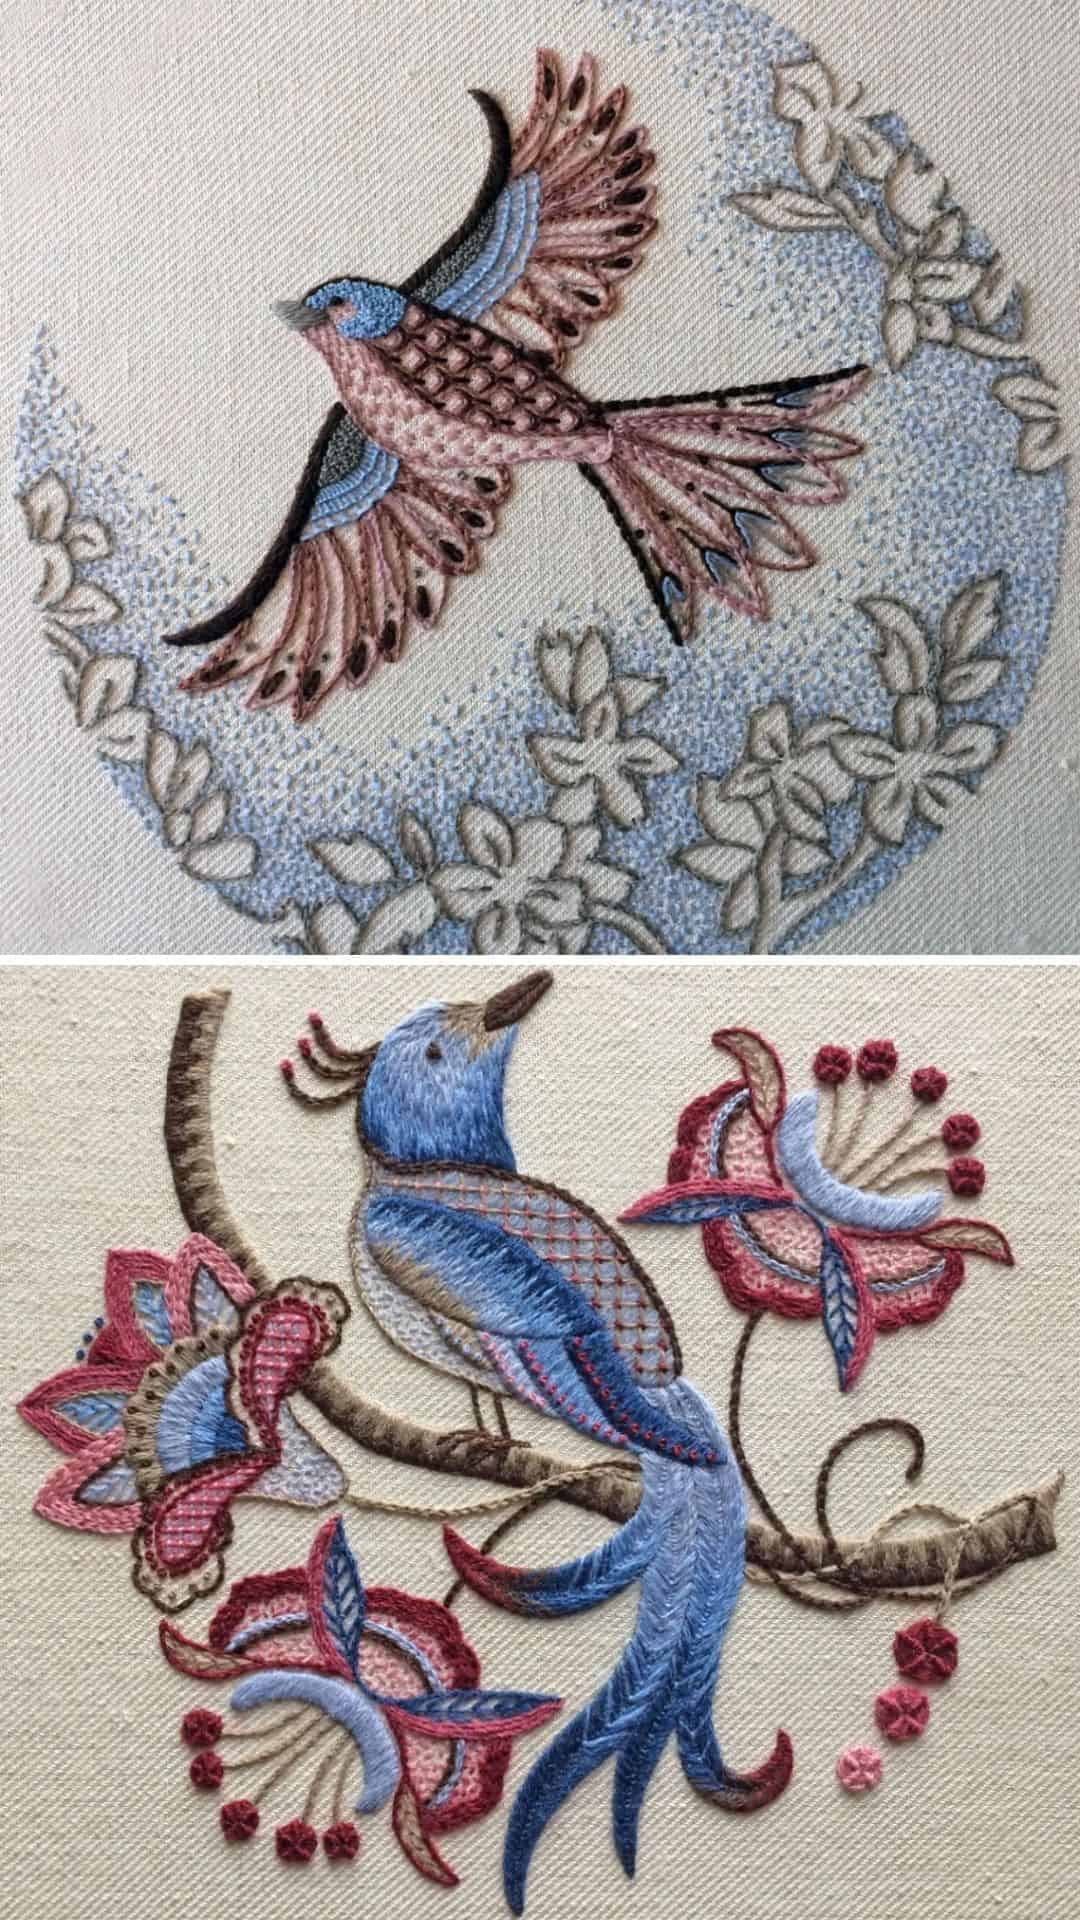 Bluebird embroidery co crewel work kits including a beautiful bird of paradise and chaffinch available to buy along with other beautiful crewel work patterns and kits I've shared on the blog #crewel #embroidery #pattern #bluebird #birdofparadise #chaffinch